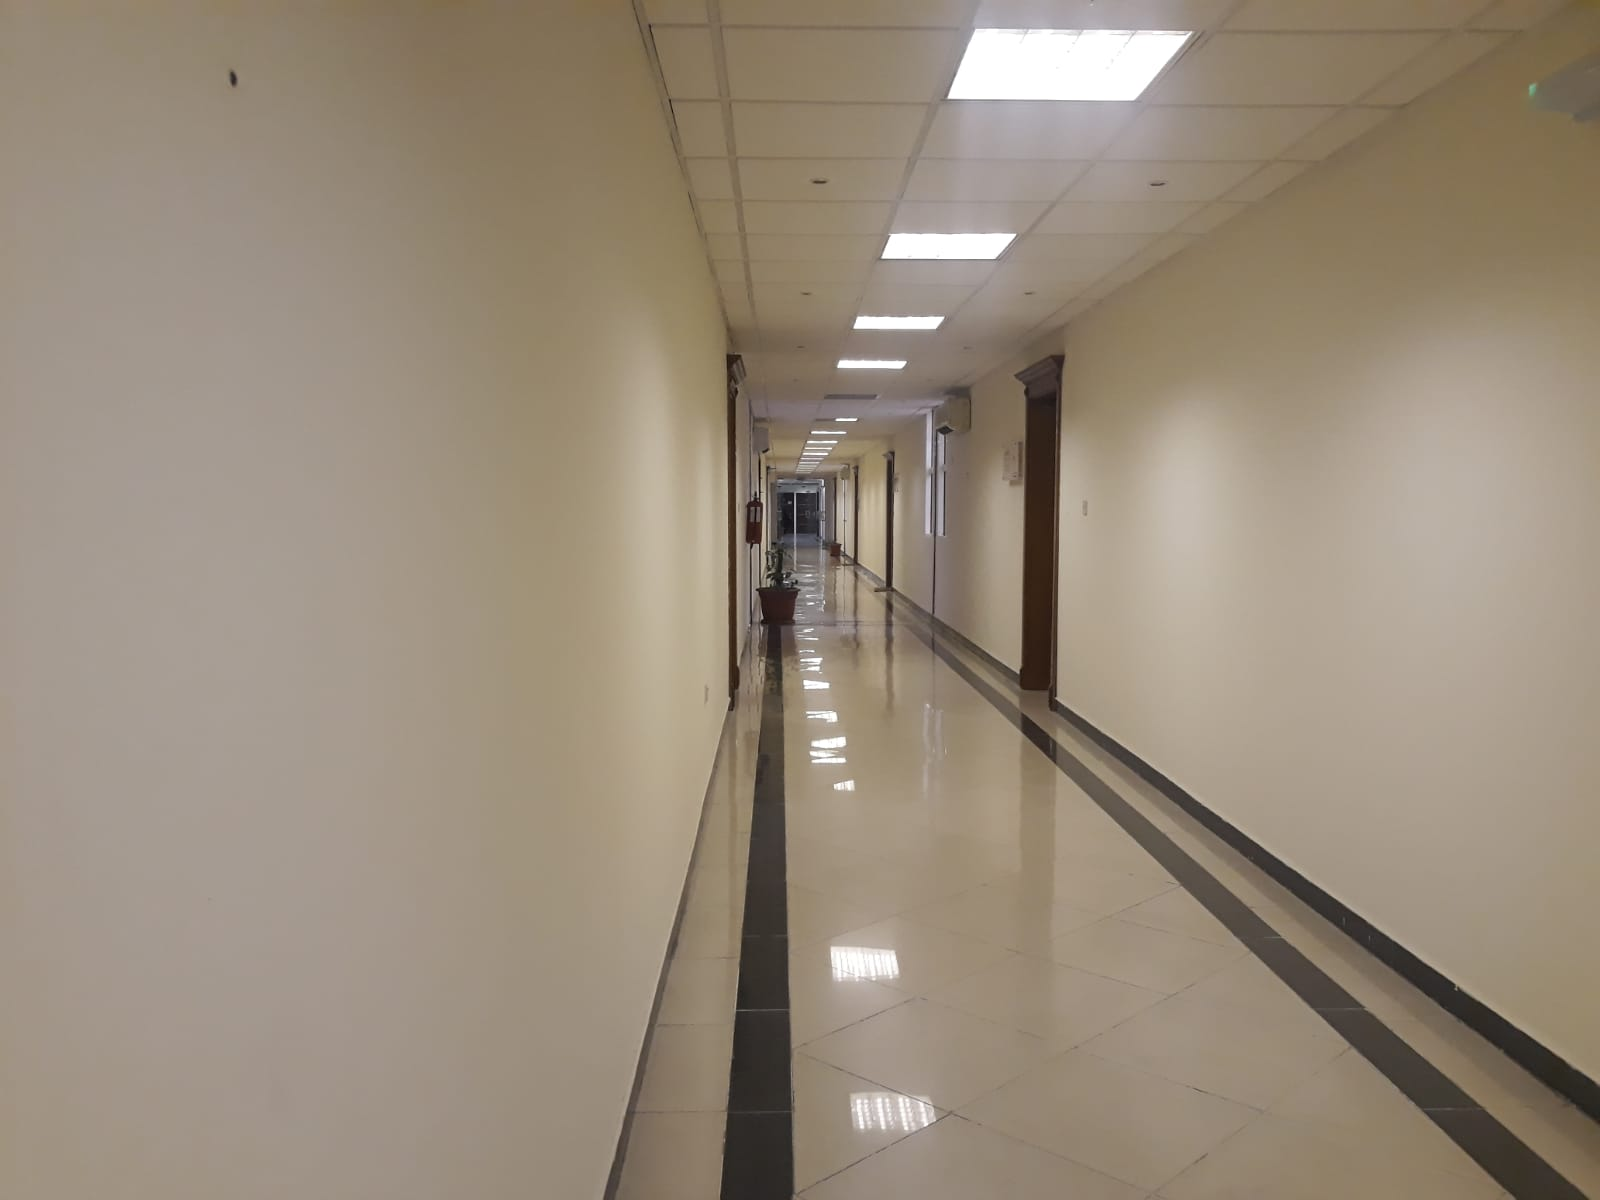 115 SQM Office space - 4 Rooms Partitioned Office in C Ring Road